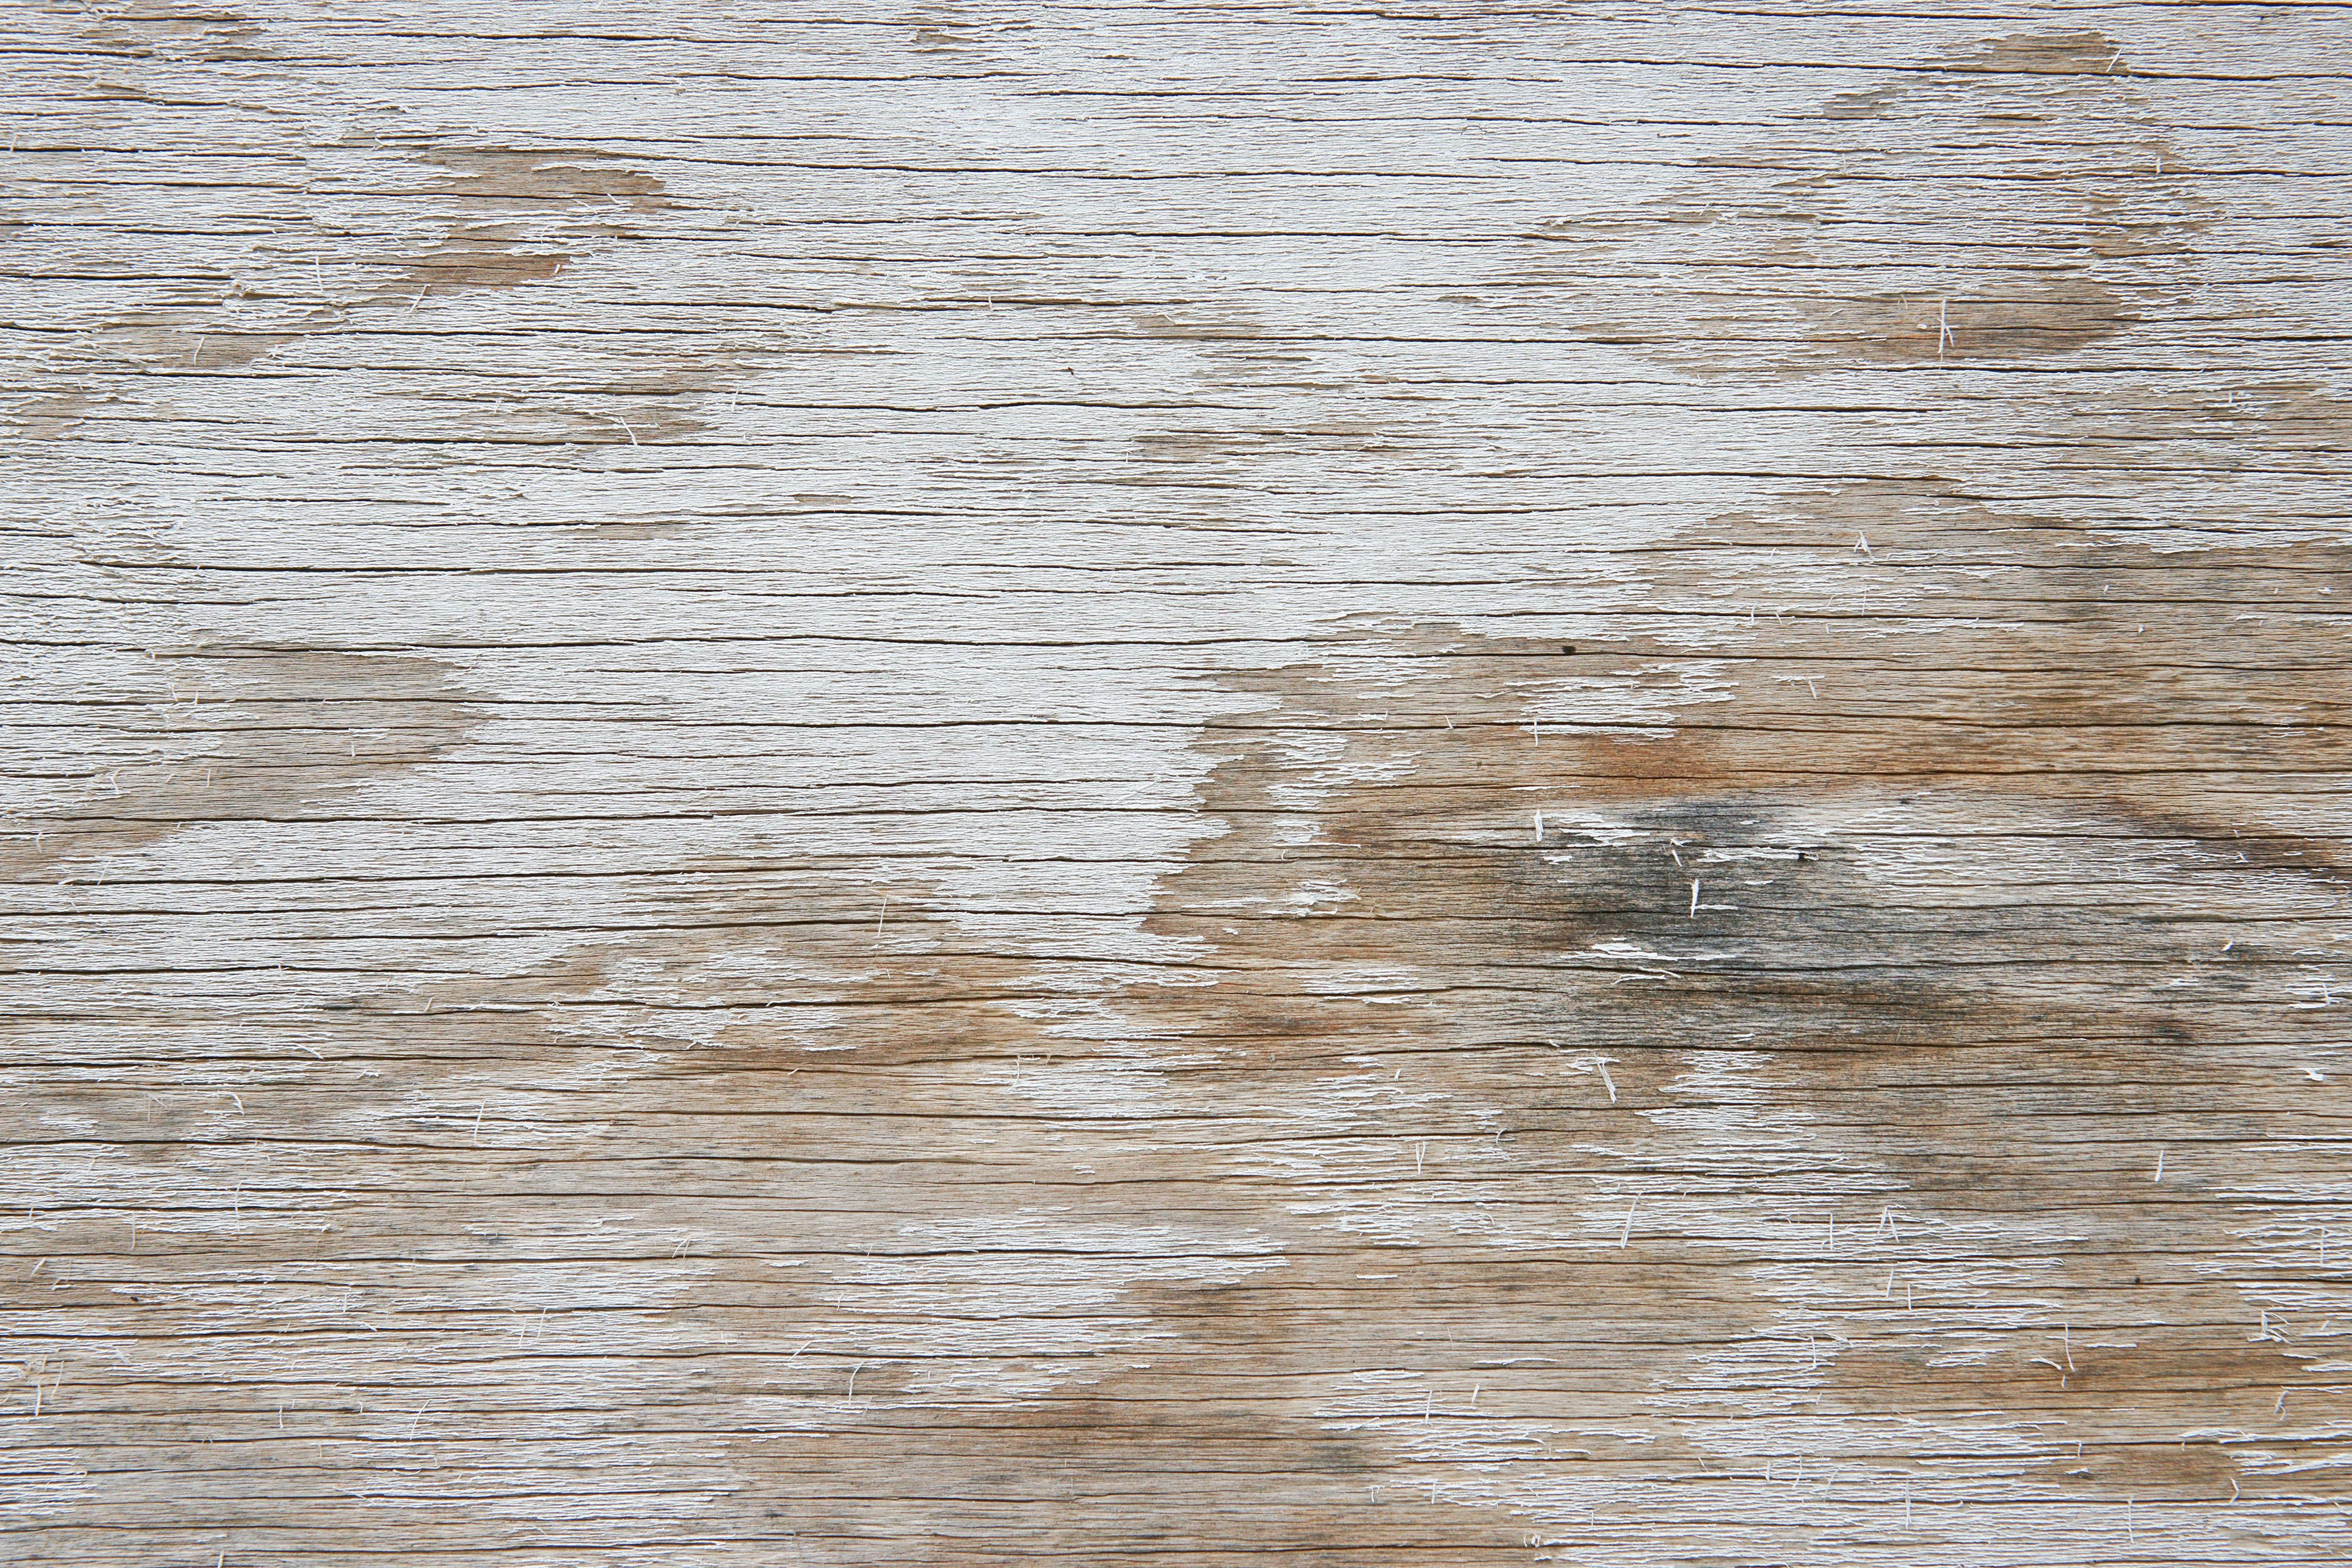 Related Image Painted Wood Texture Old Wood Floors White Wood Texture